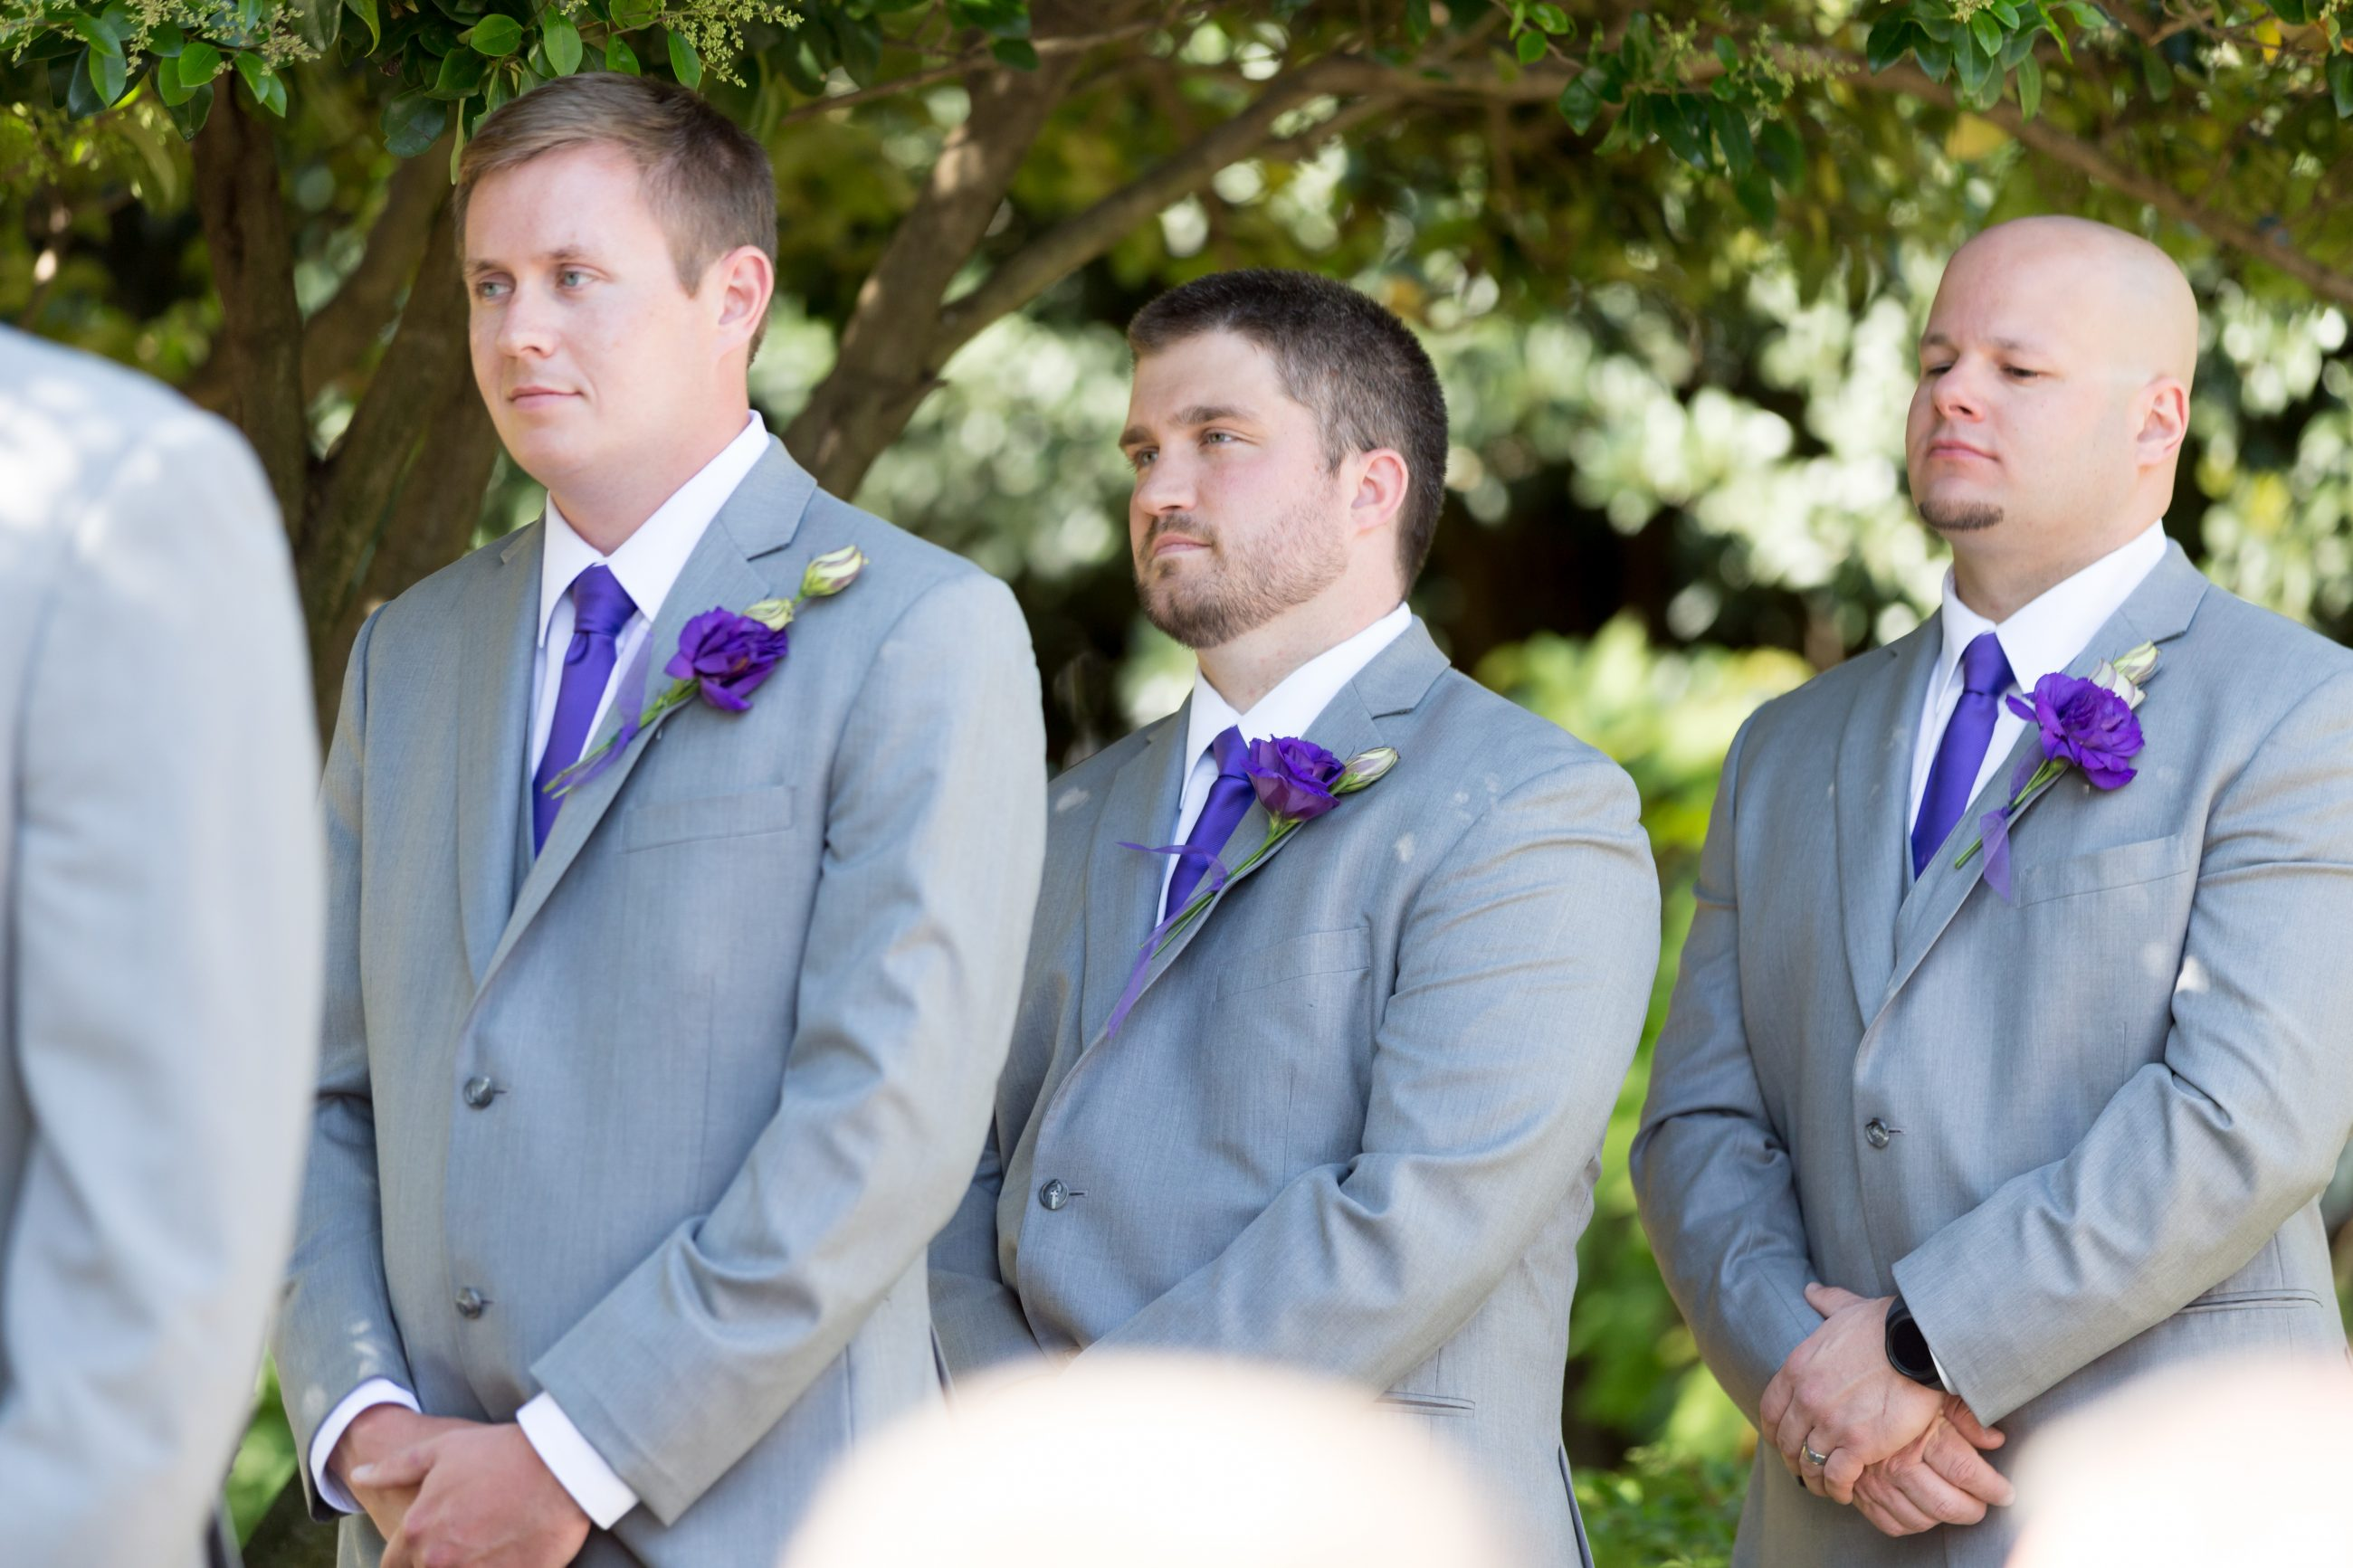 Groomsmen during the wedding ceremony at McGill Rose Garden in Charlotte NC